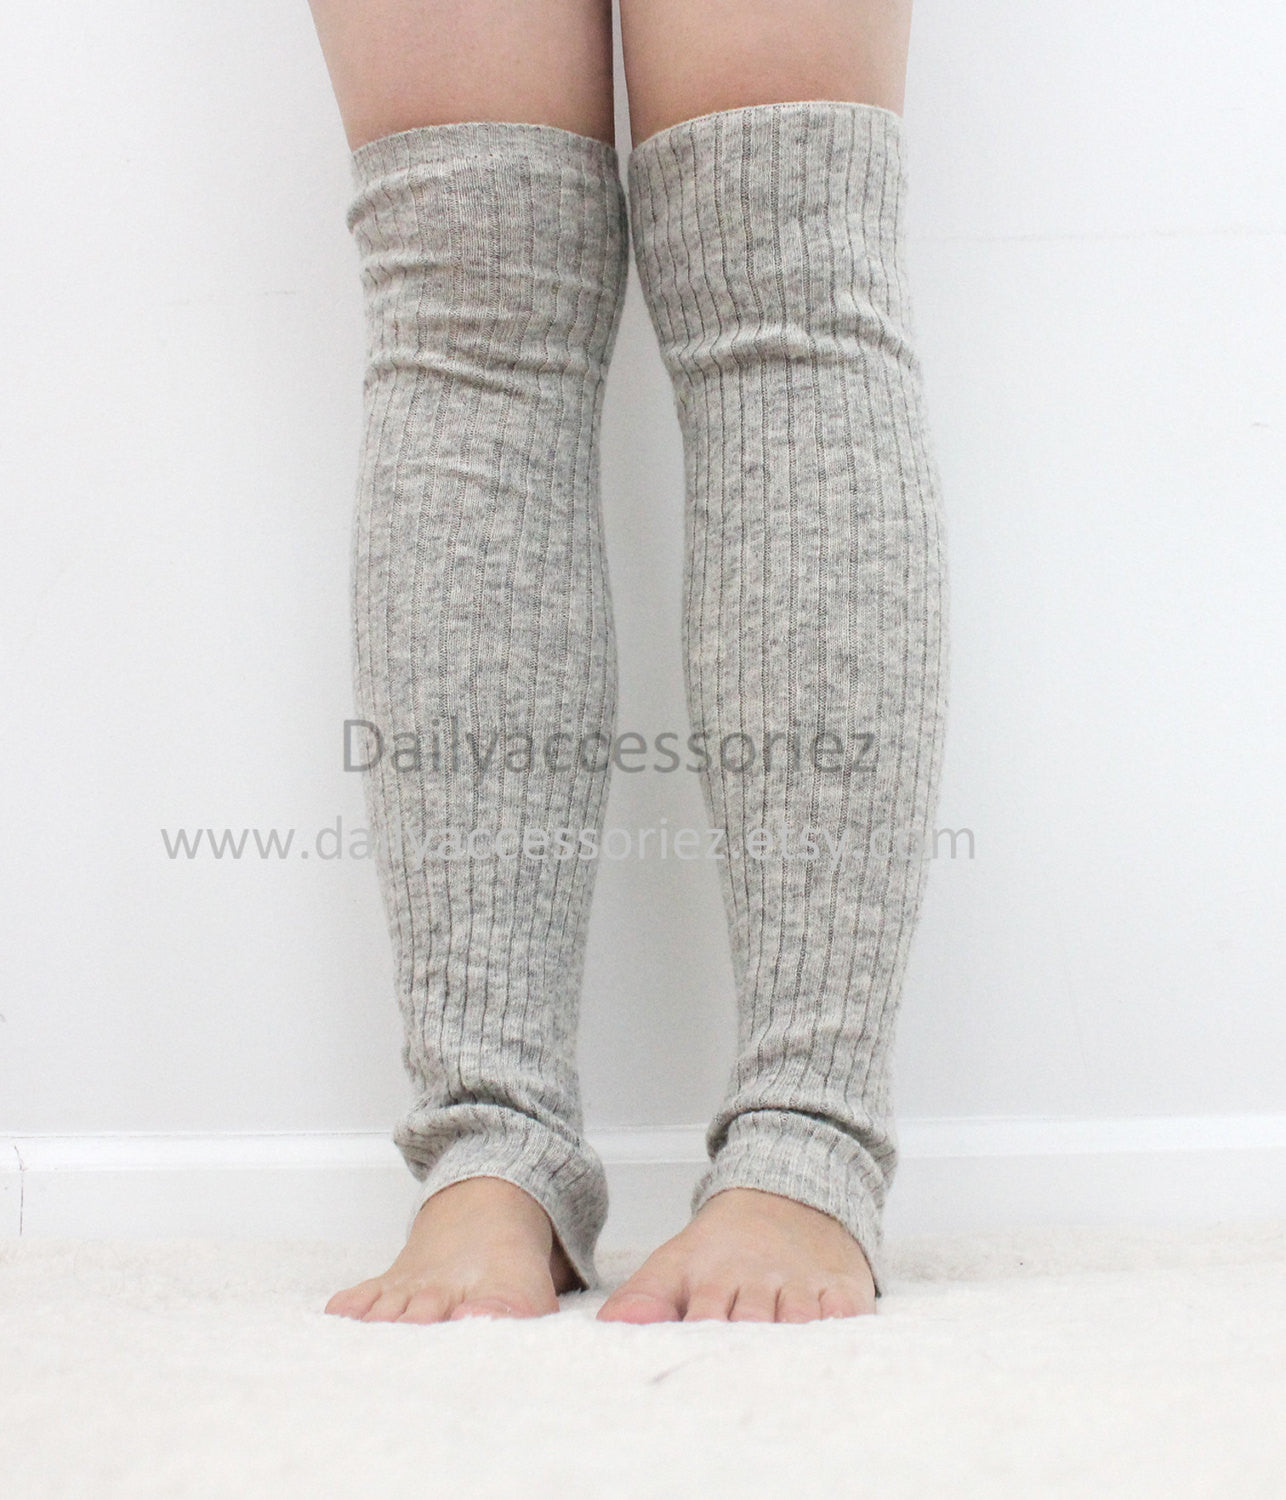 Soft knit womens leg warmers - Bean Concept - Etsy